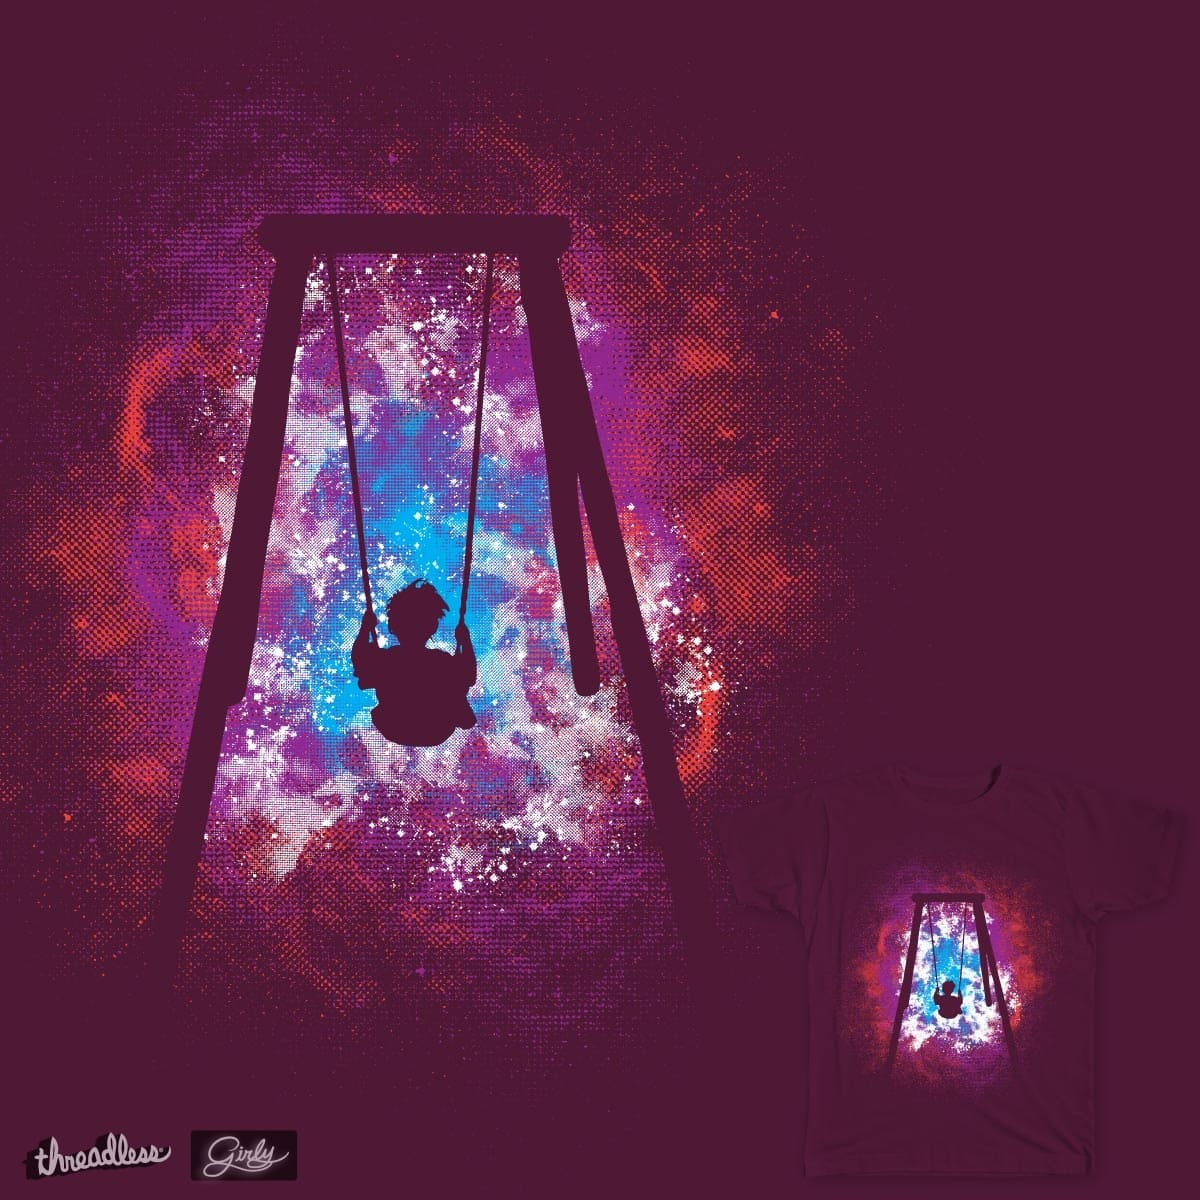 Space Swing by daletheskater on Threadless